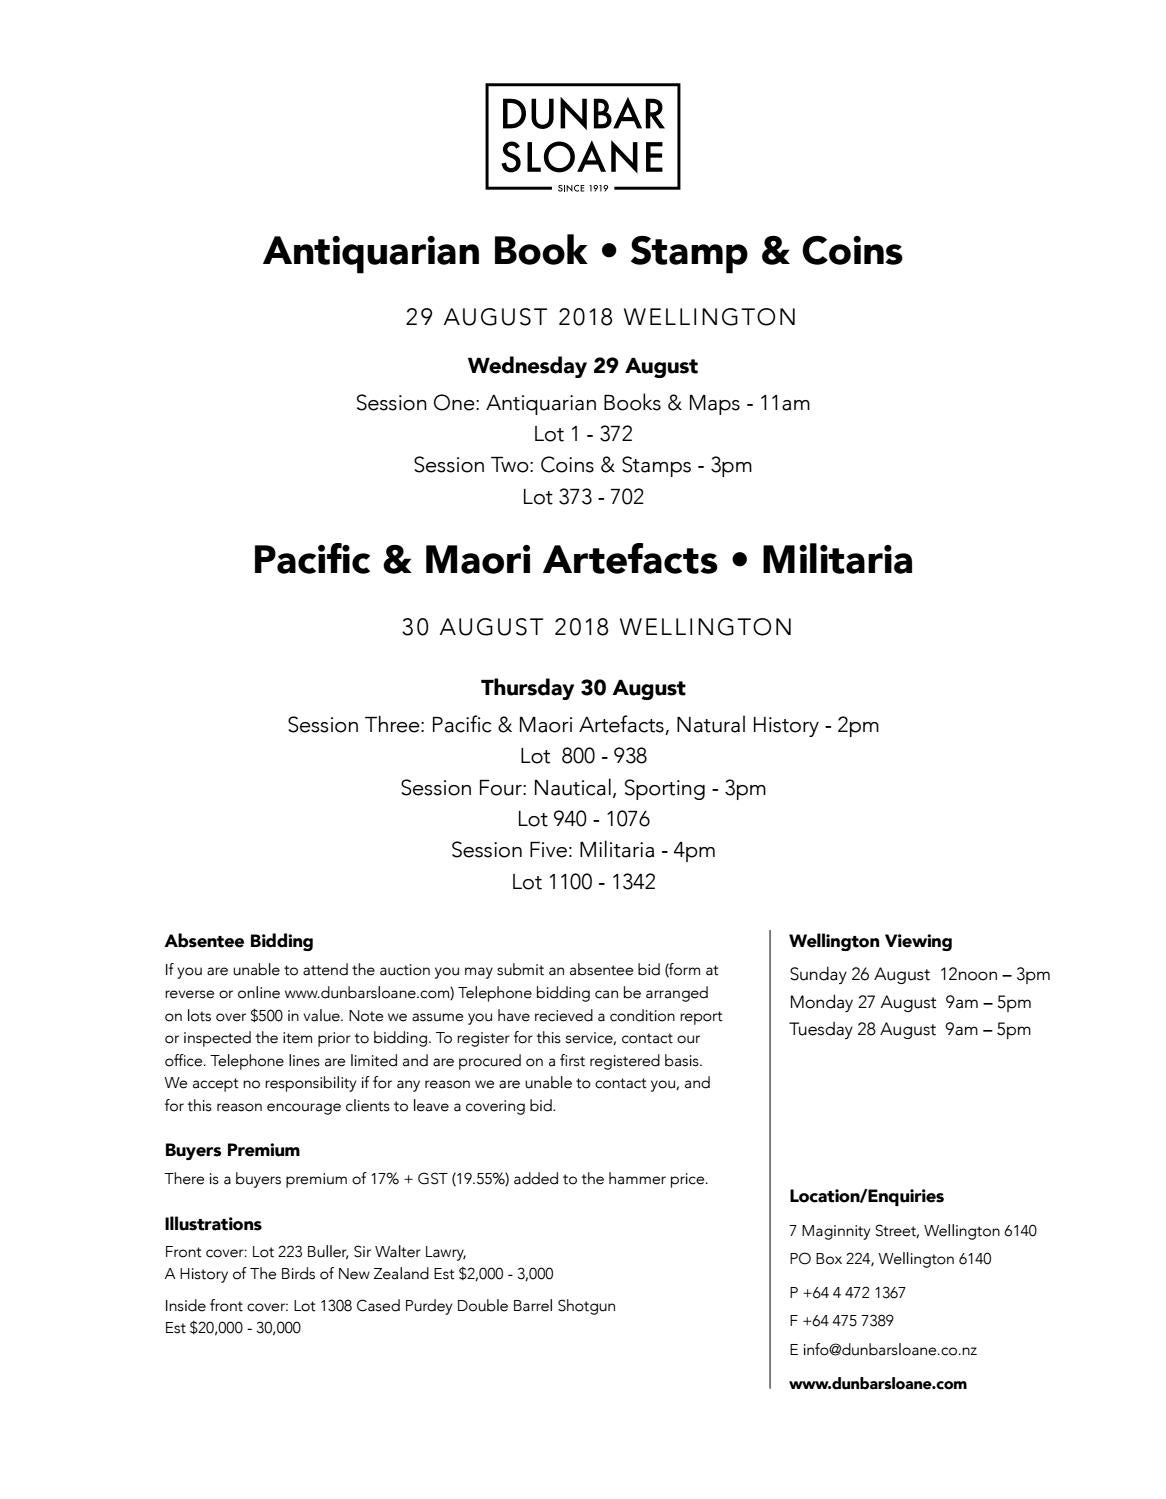 hight resolution of antiquarian book stamp coins military artefacts by dunbar sloane ltd issuu